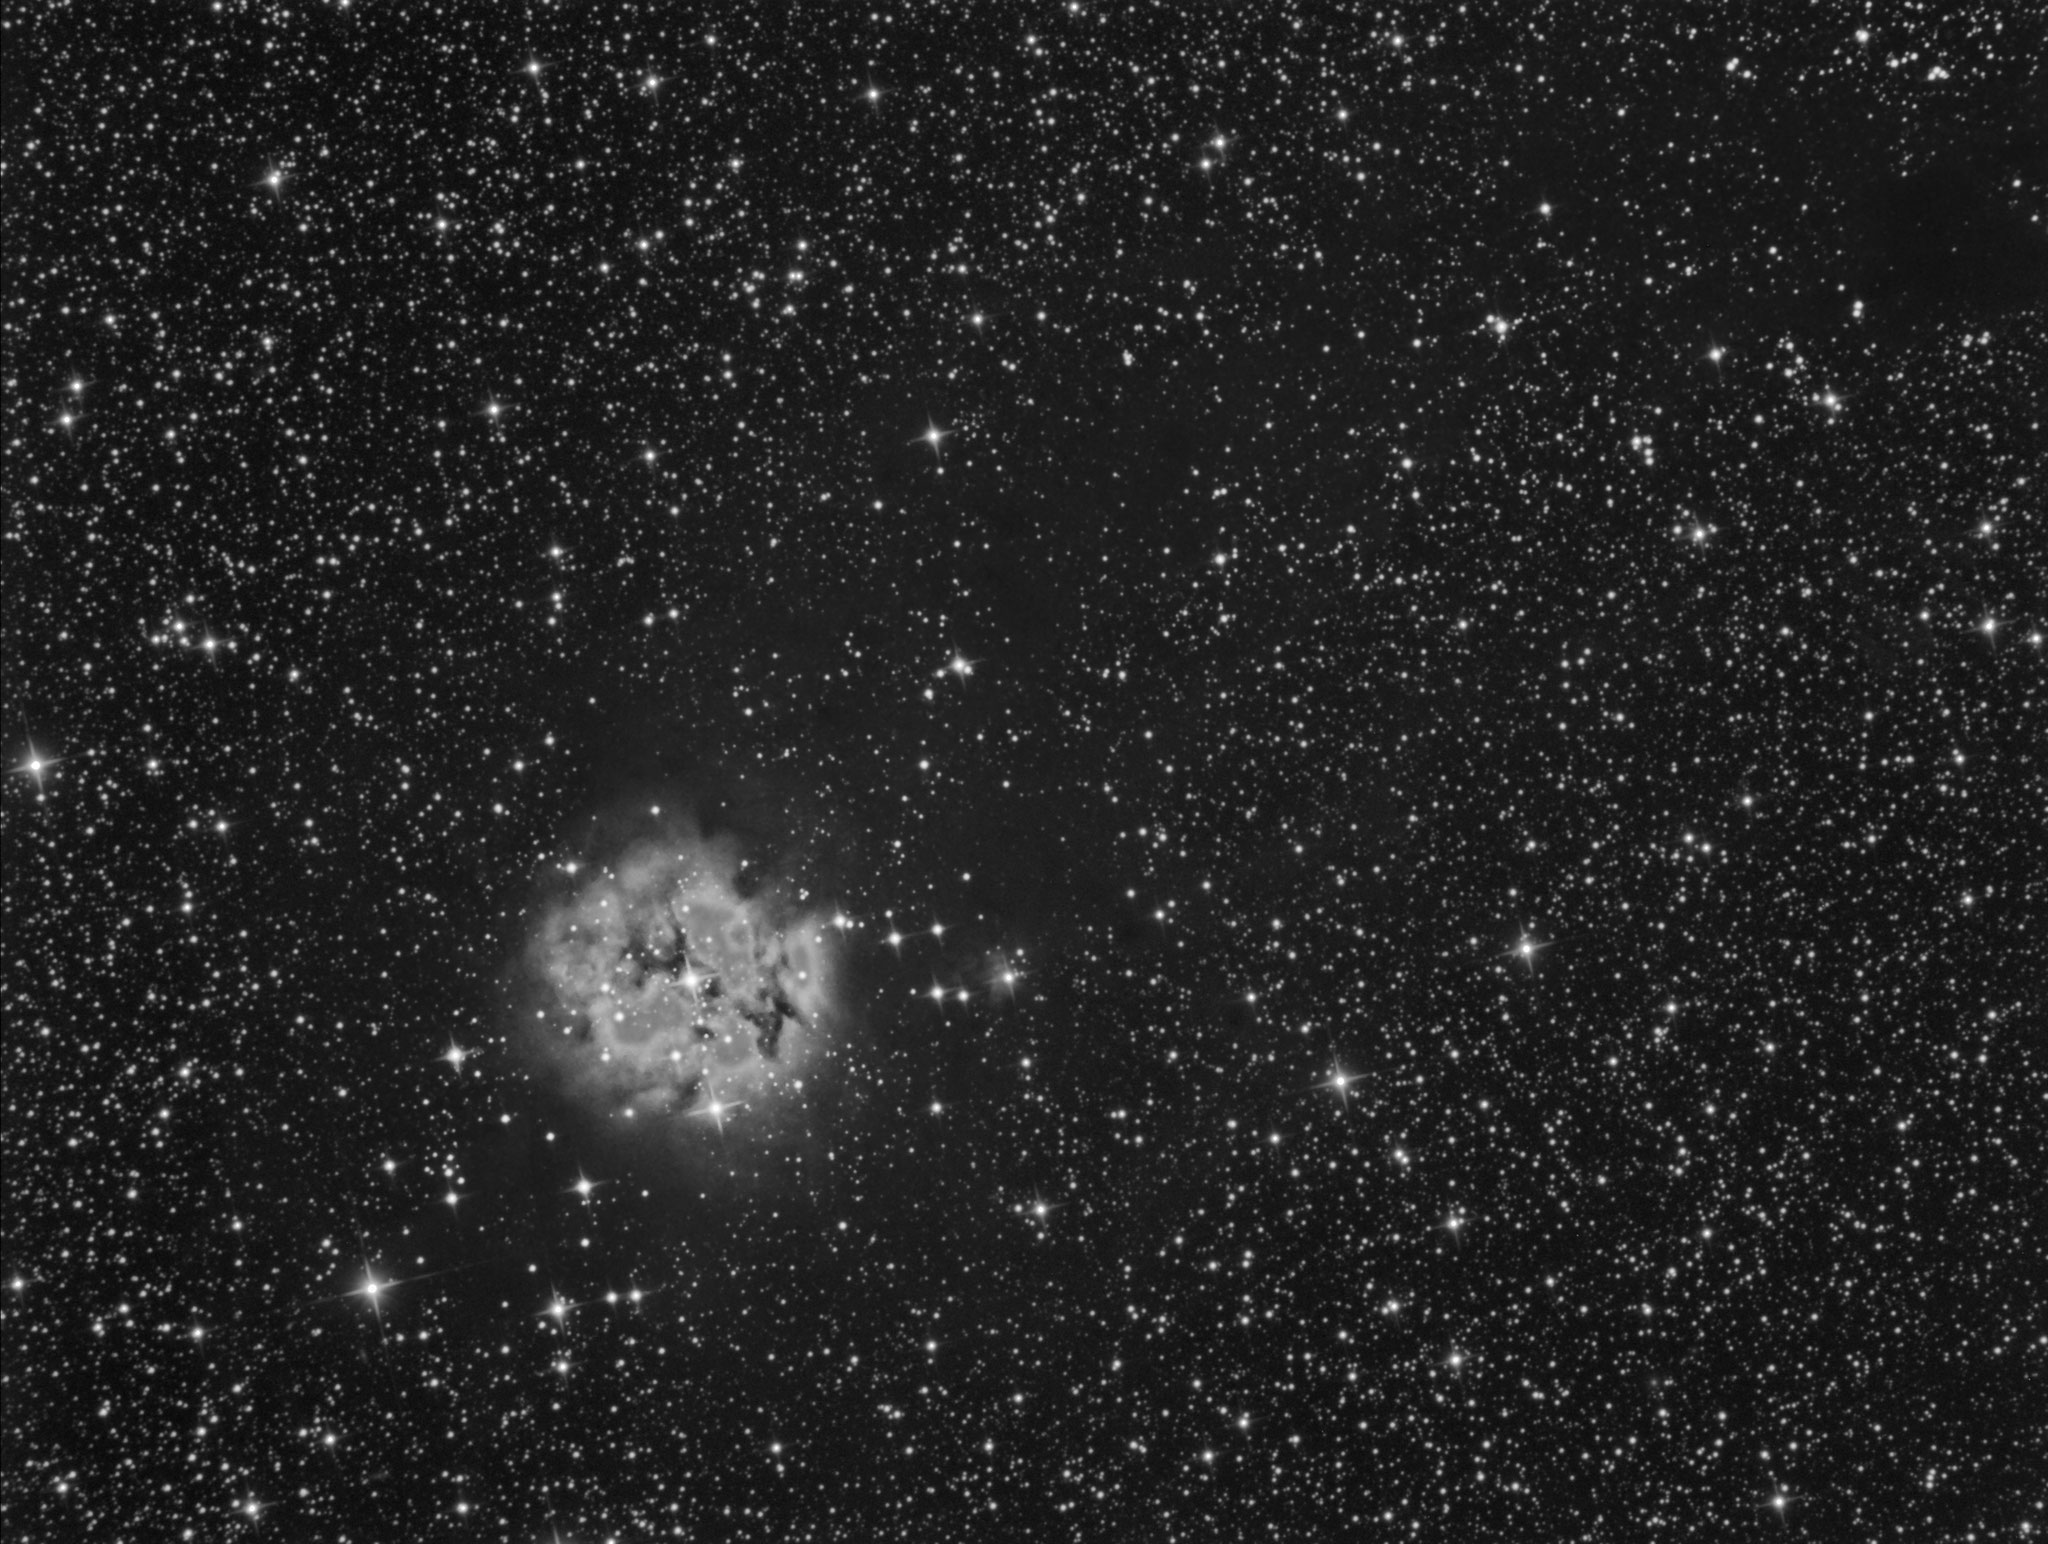 IC5146, 6x300s en luminance, image de test, 25 août 2016